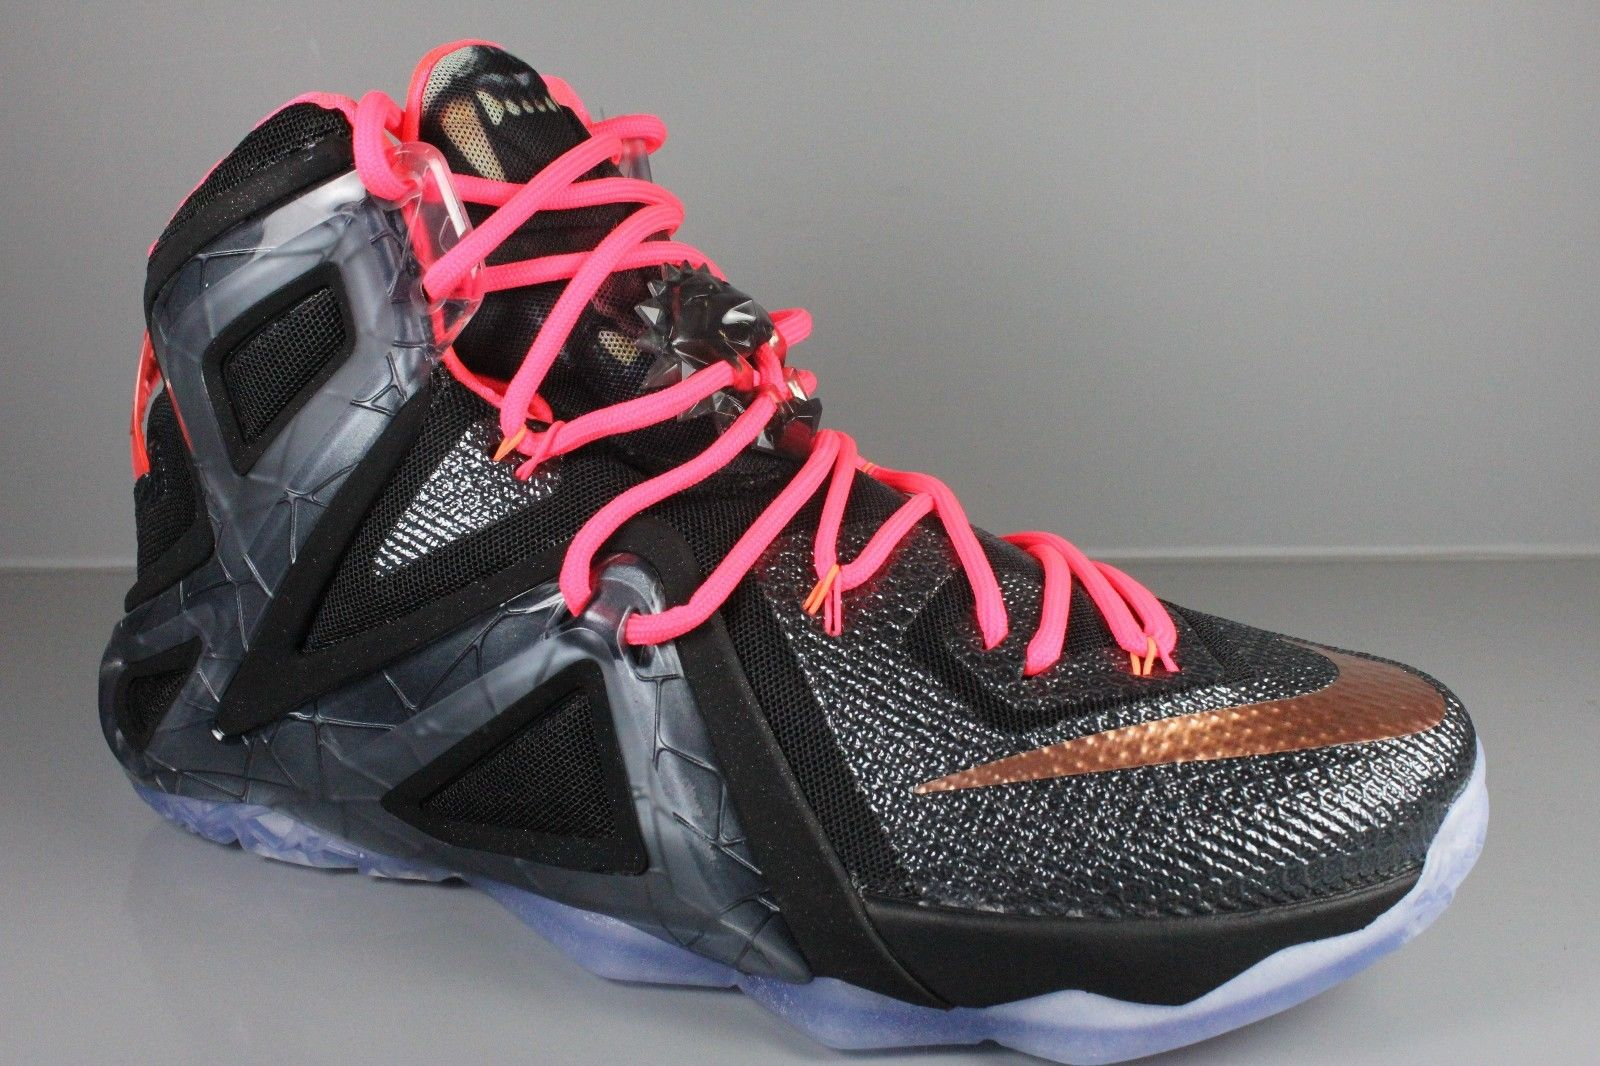 finest selection 8da50 9aeae ... top quality will lebron james ever wear this nike lebron 12 elite 7609e  04eae